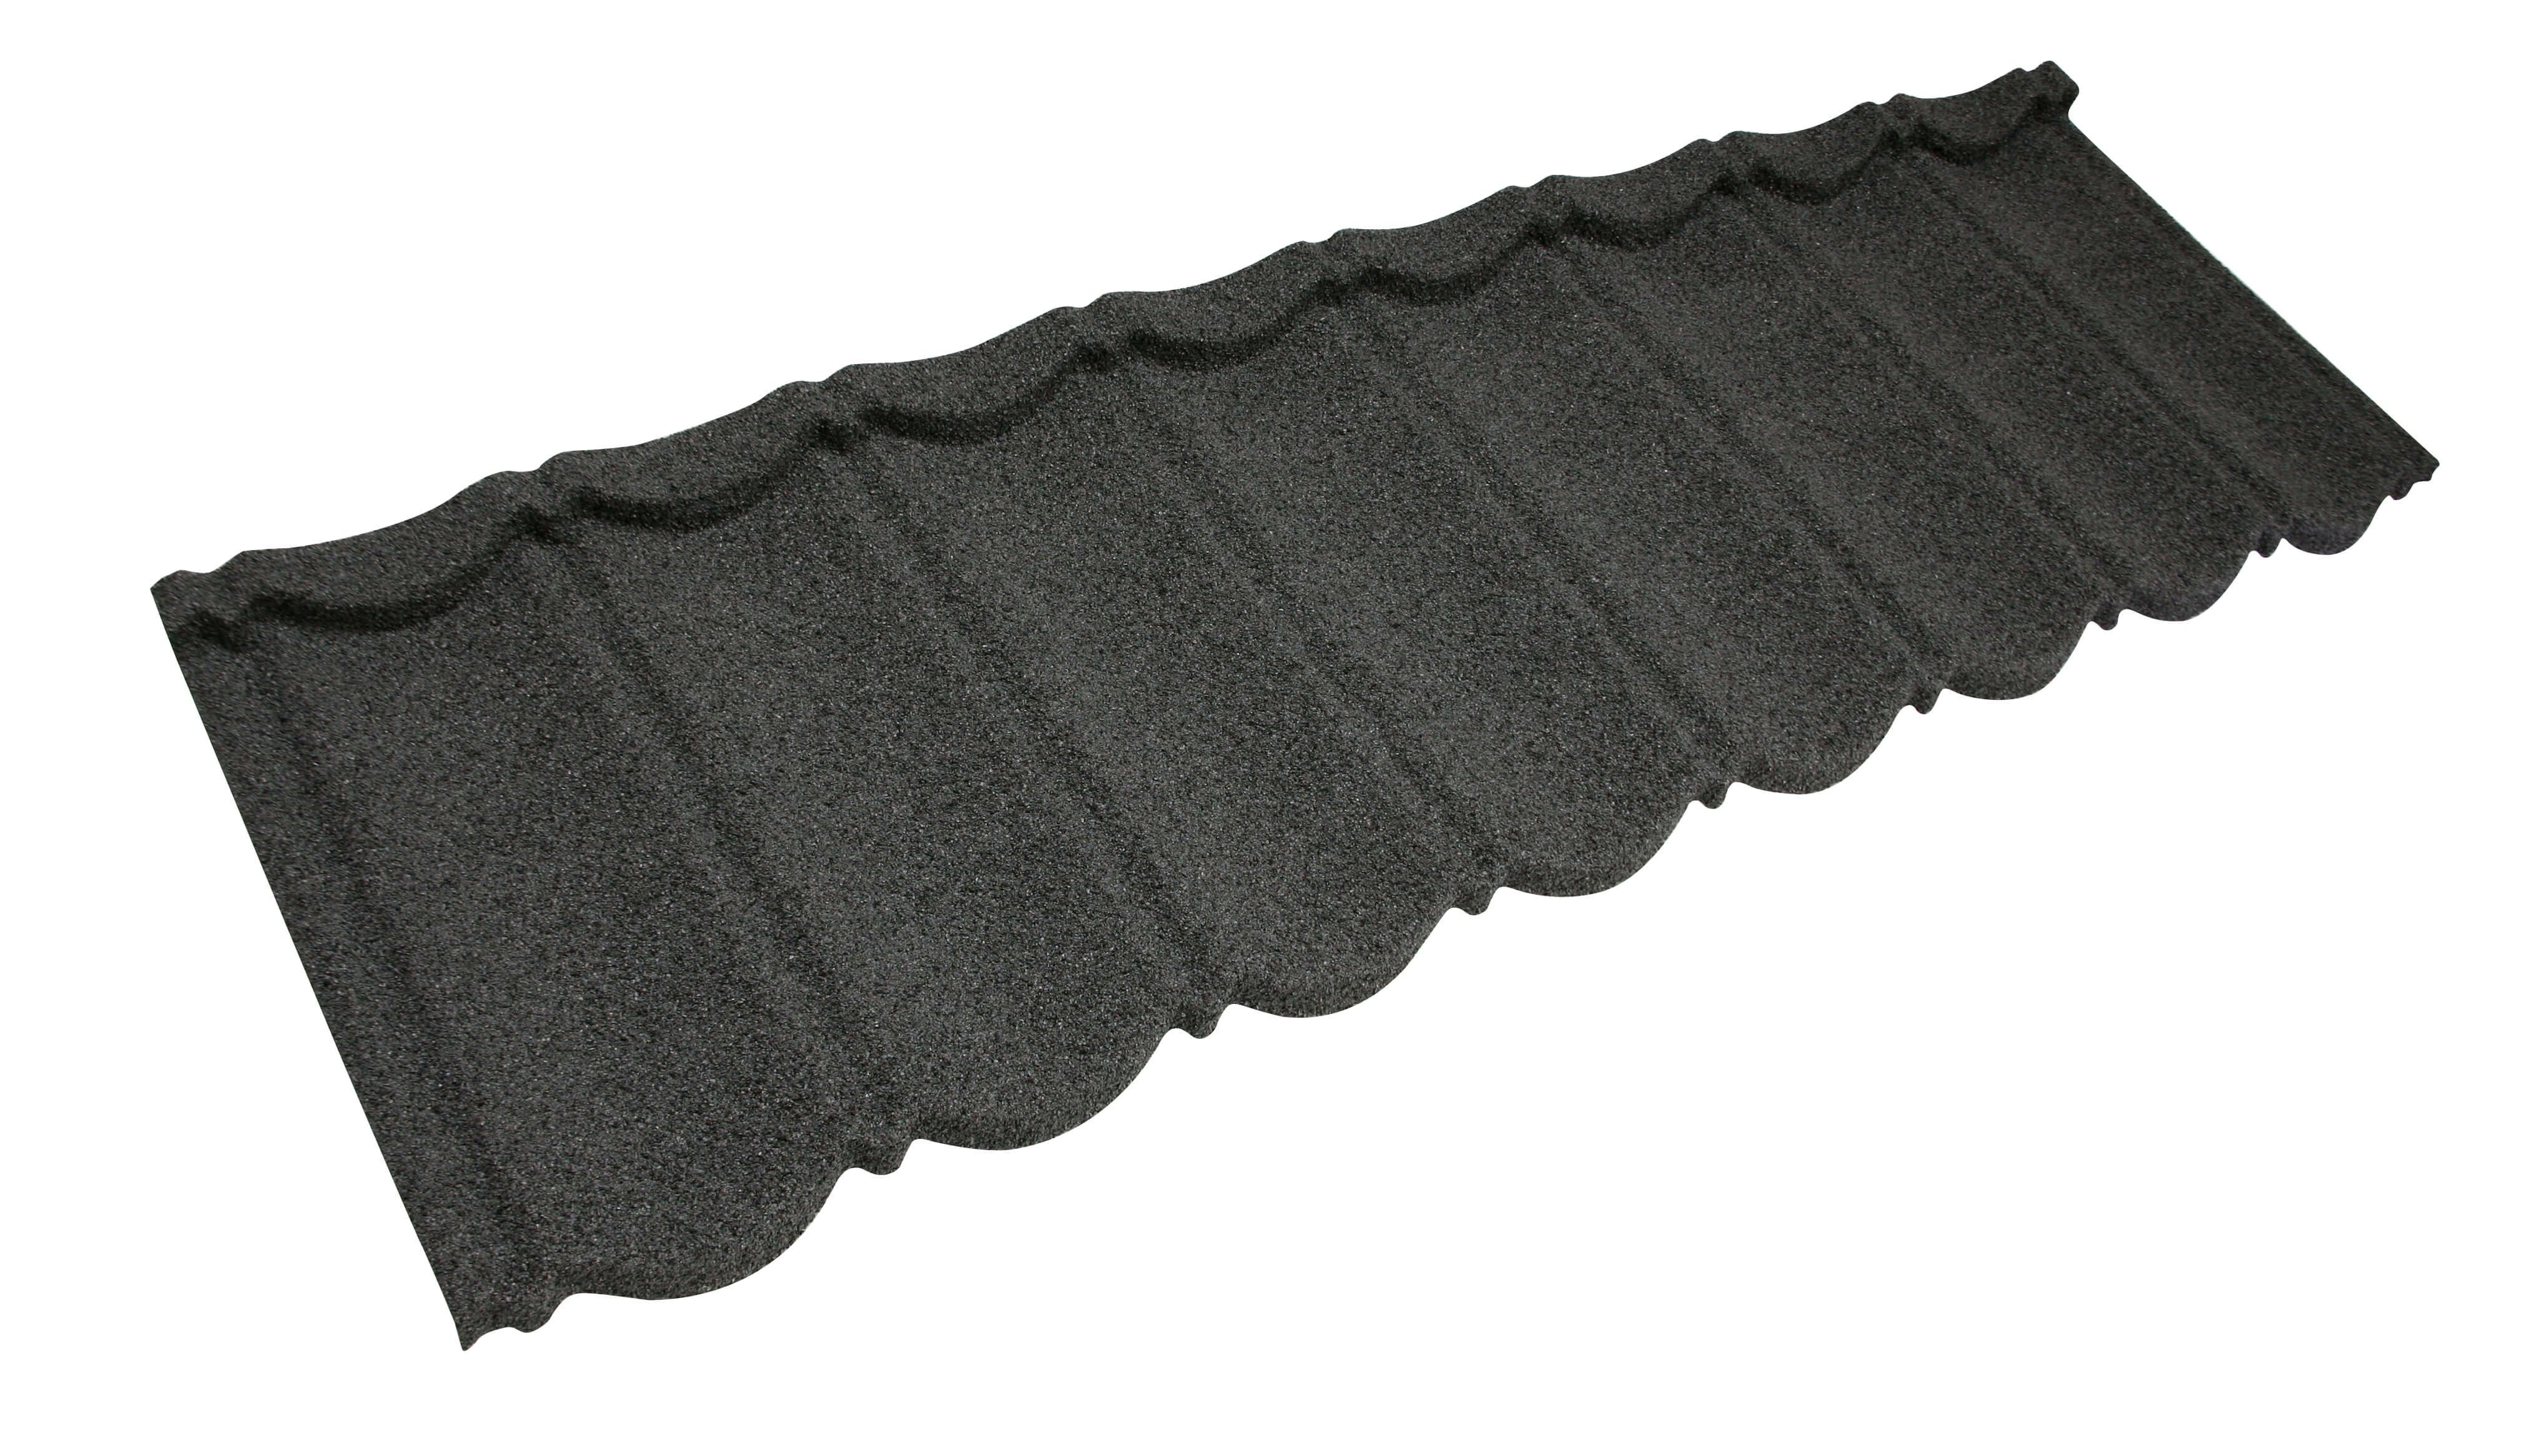 Metrotile Bond Lightweight Roofing Tile Profile in Charcoal